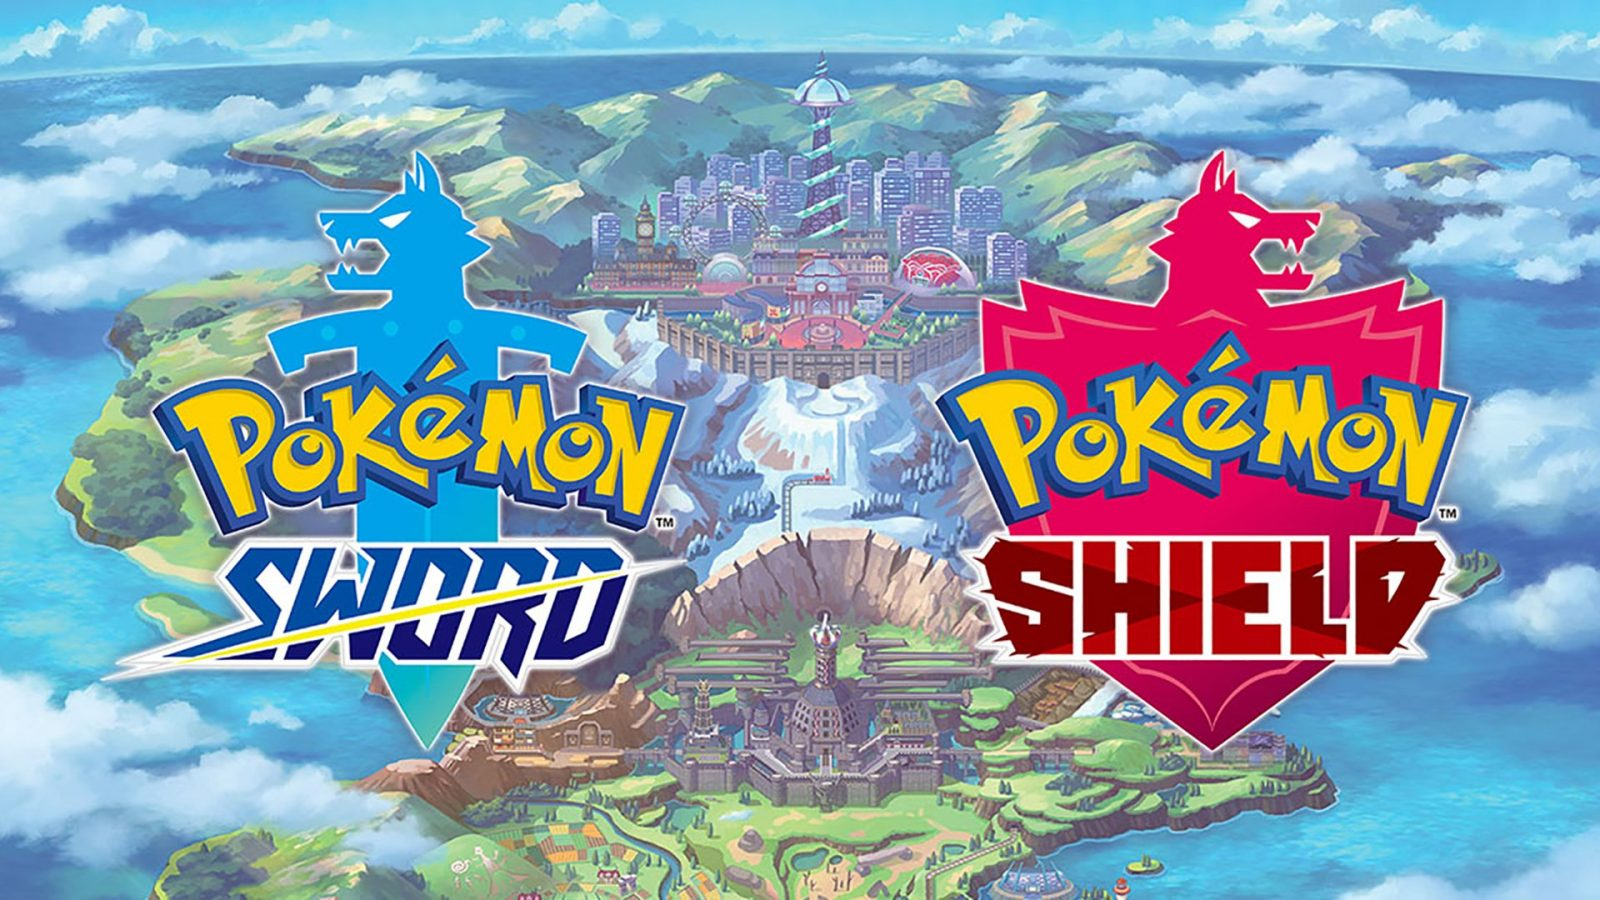 Pokemon Global Link Will Not Be Used in Sword and Shield